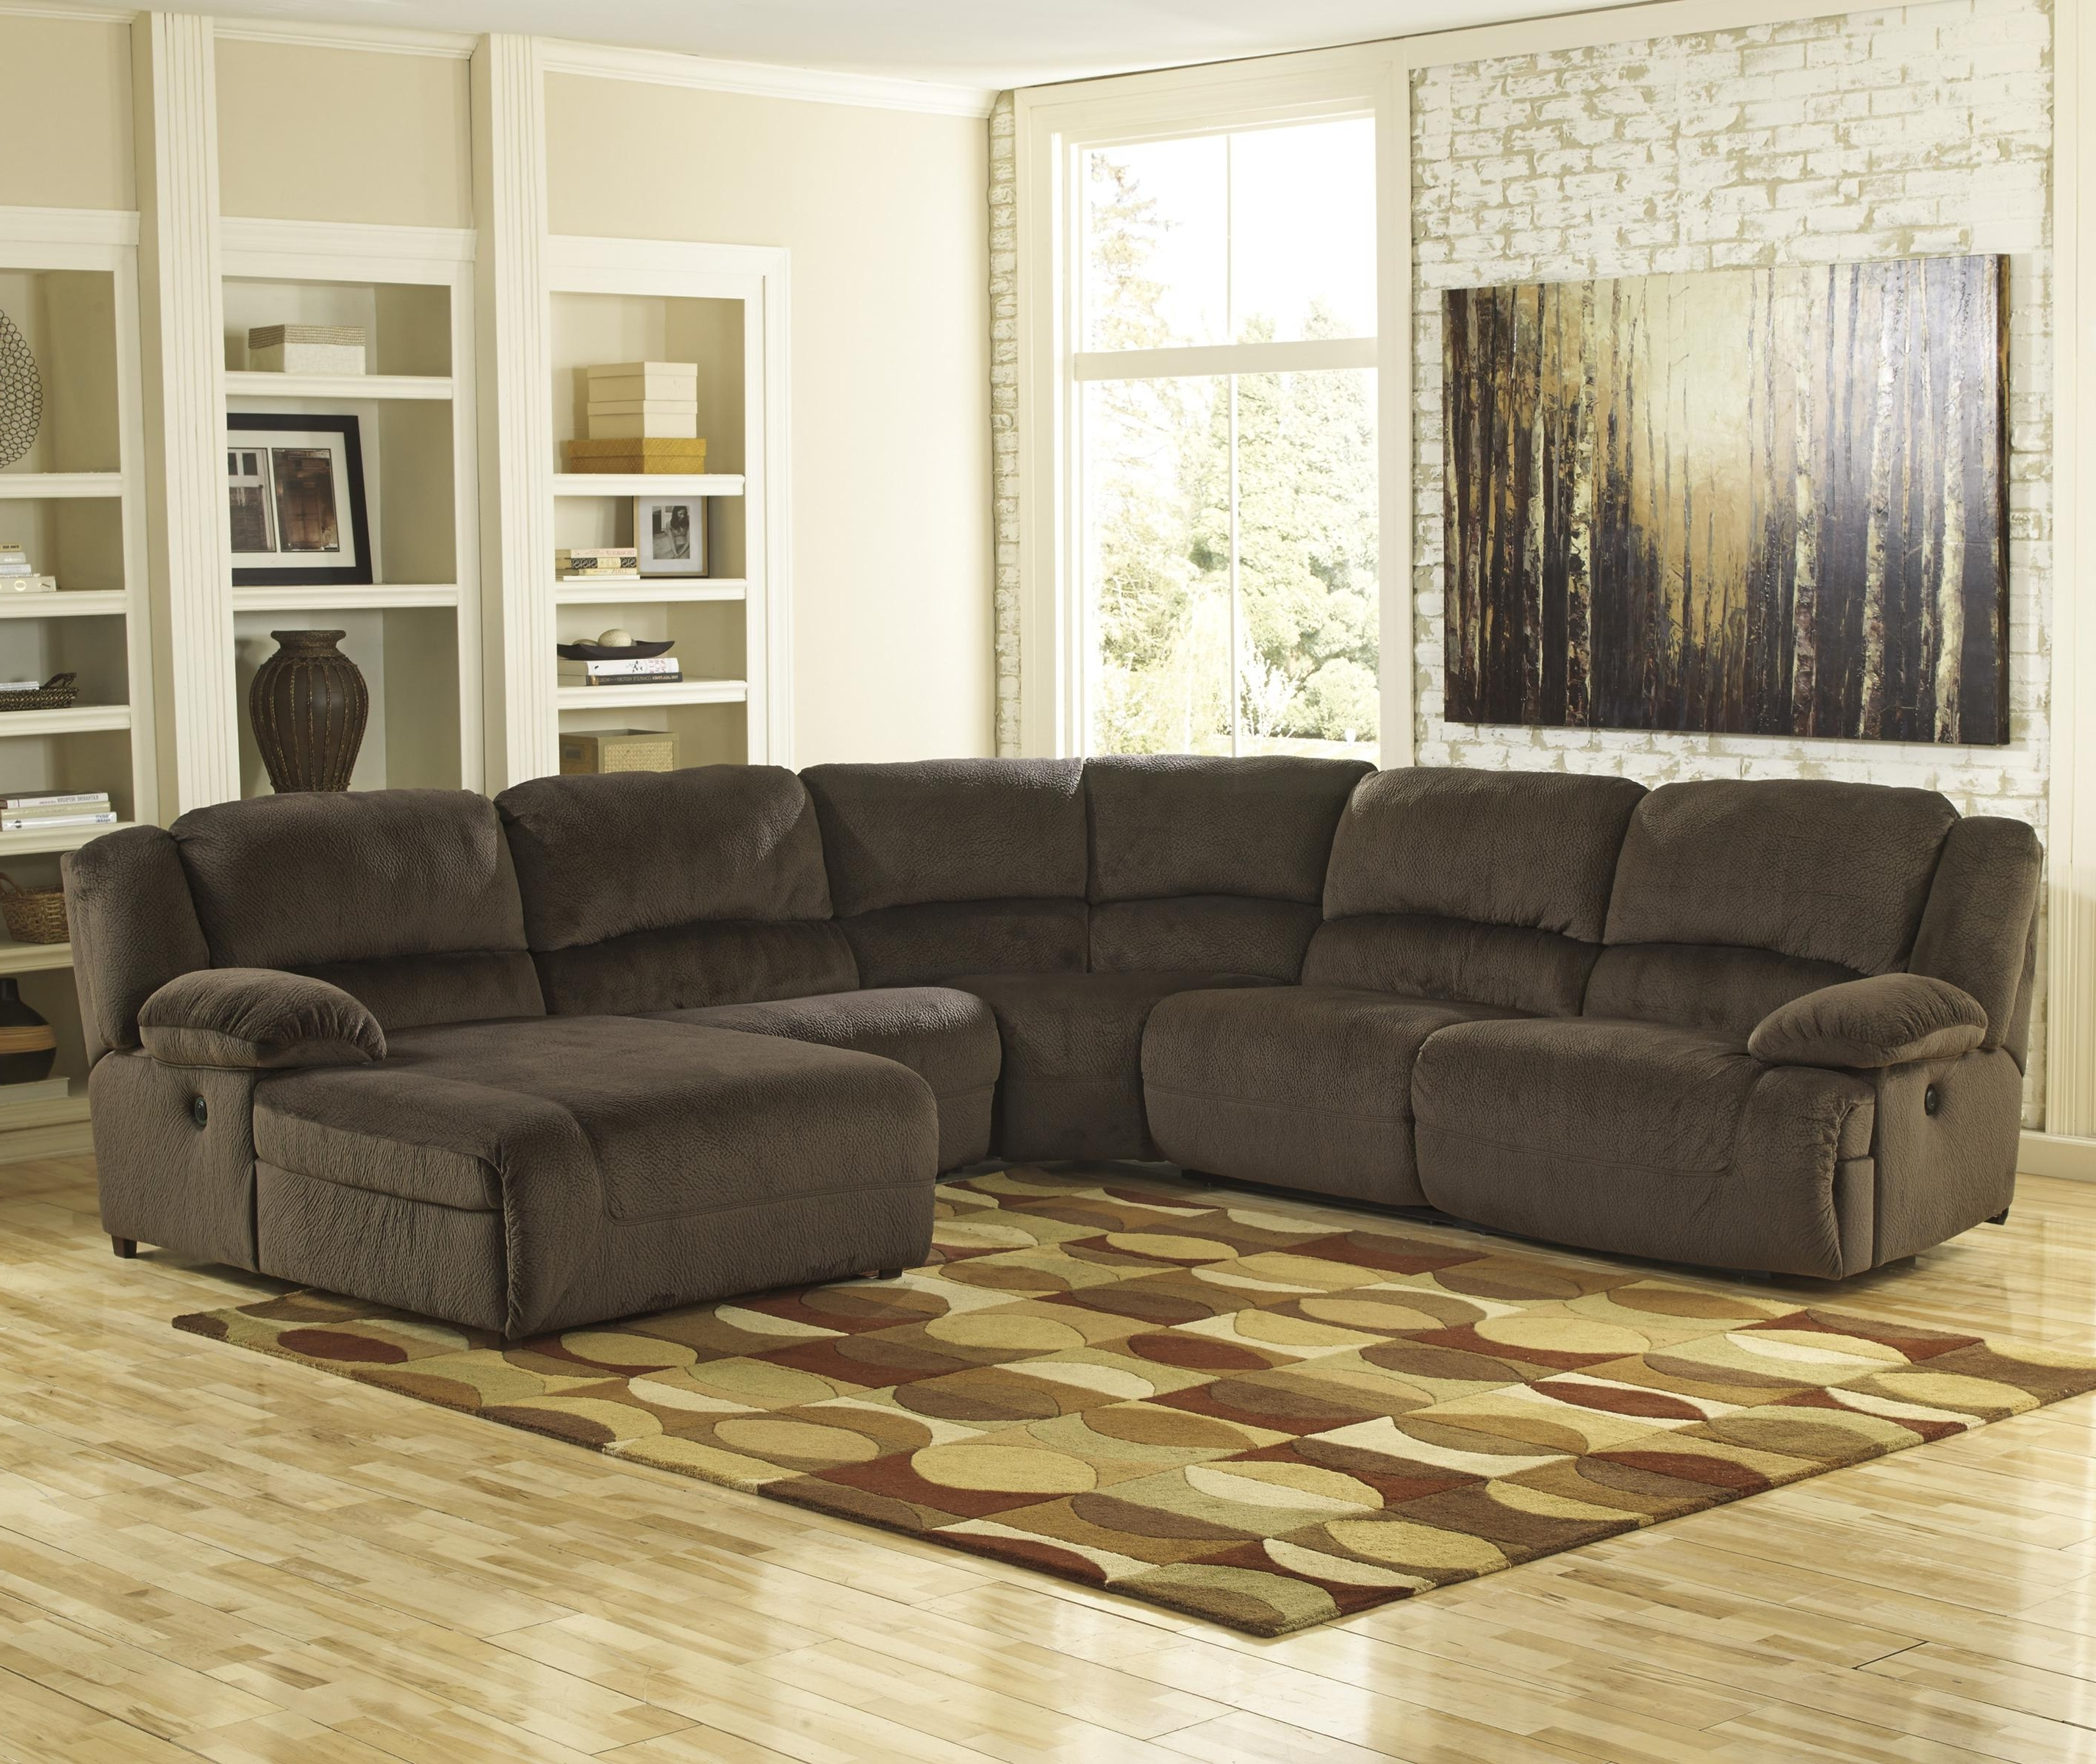 2018 Sofa Sectionals With Chaise Pertaining To Natuzzi Leather Reclining Sectional Big Softie Chair White Leather (View 14 of 15)